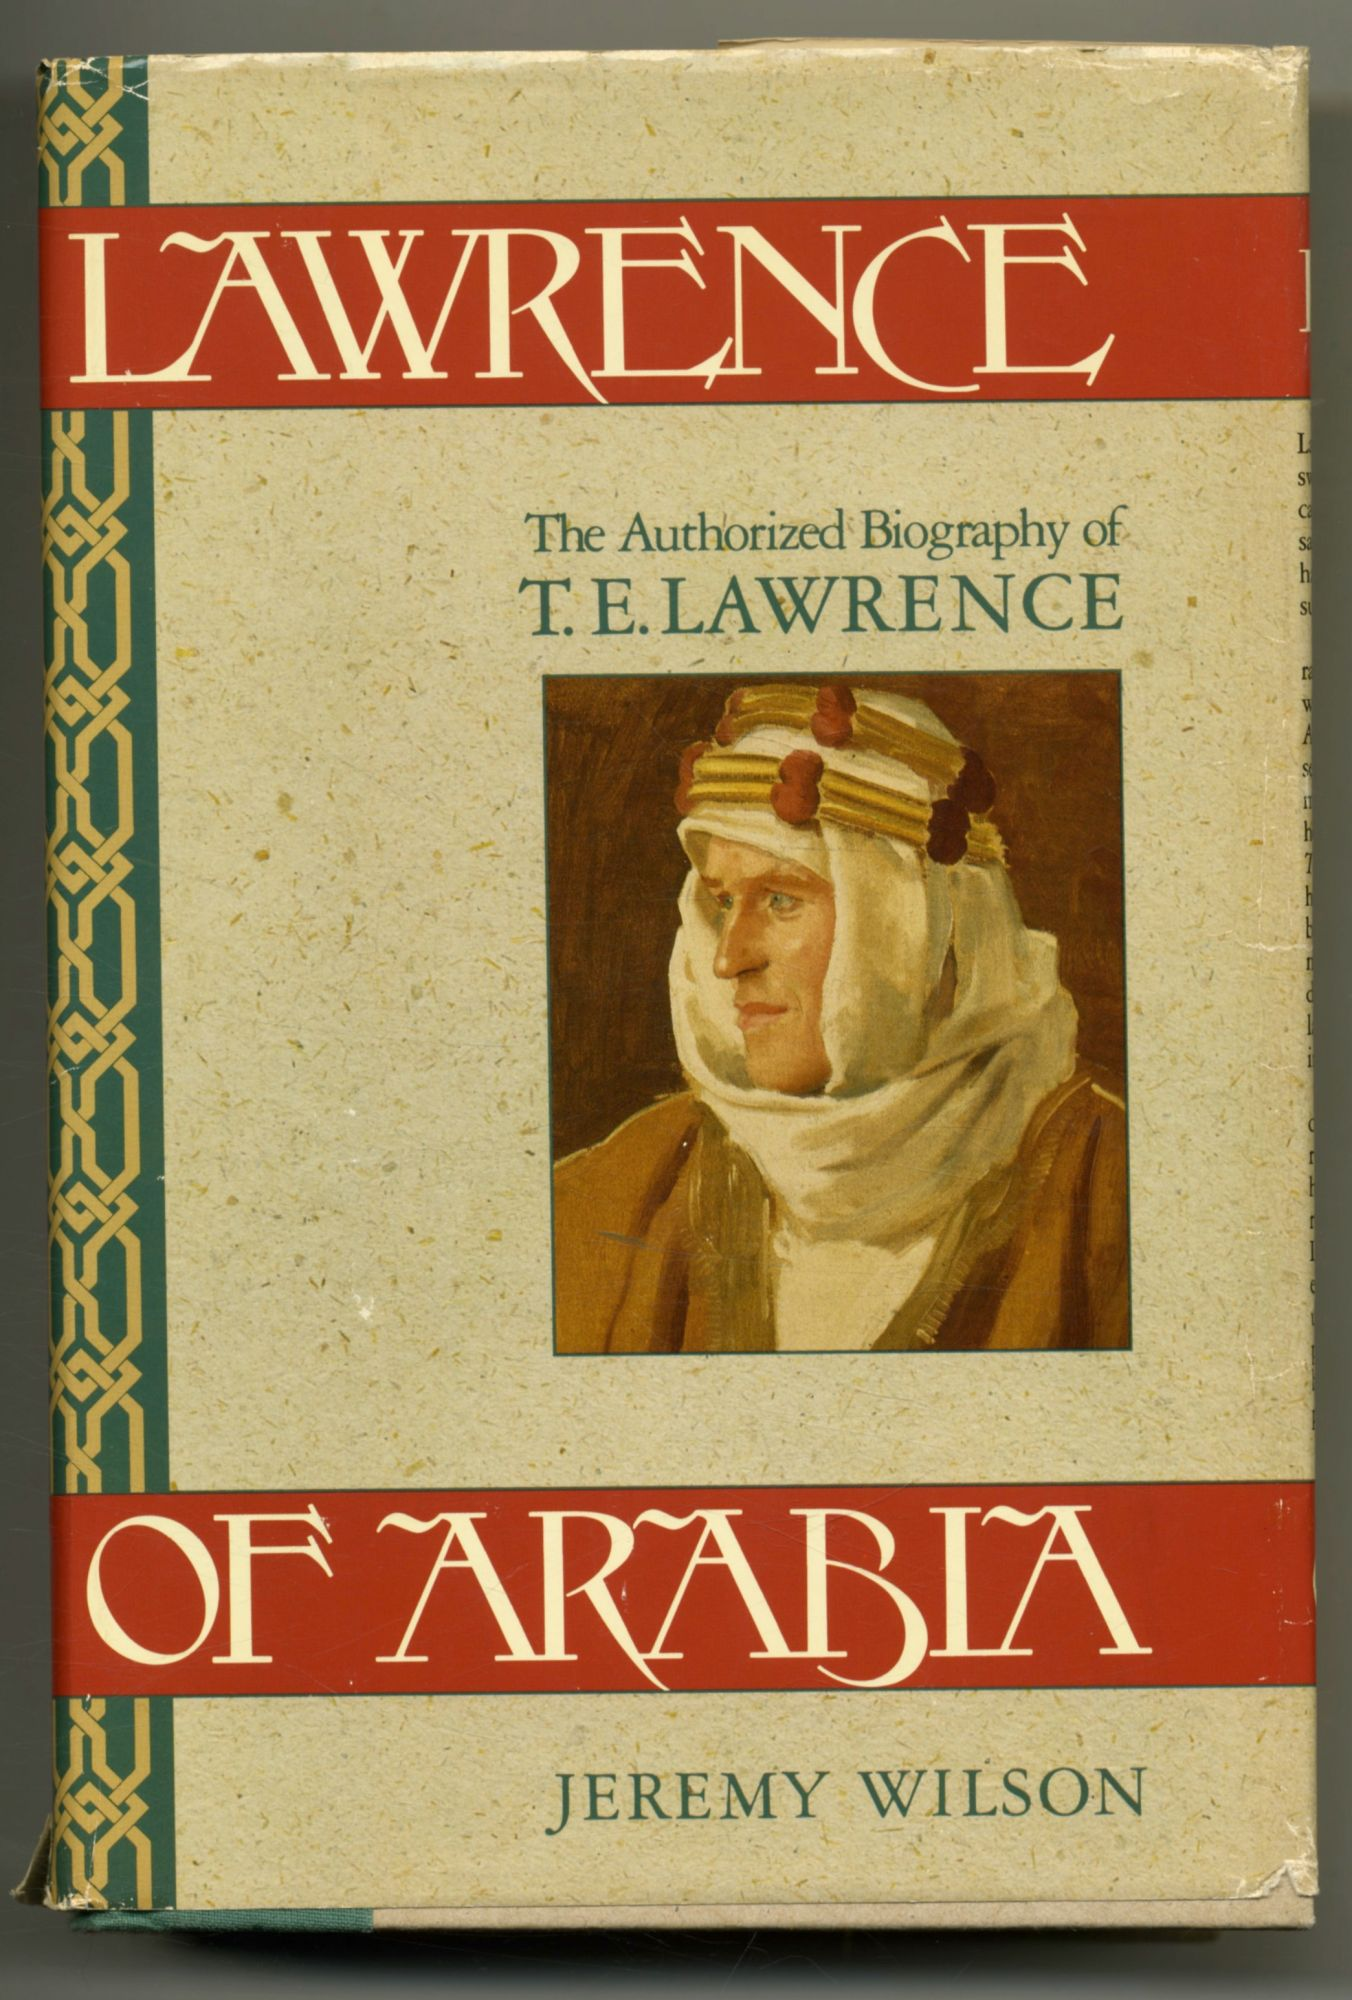 Lawrence of Arabia: the Authorized Biography of T. E. Lawrence. Jeremy Wilson.